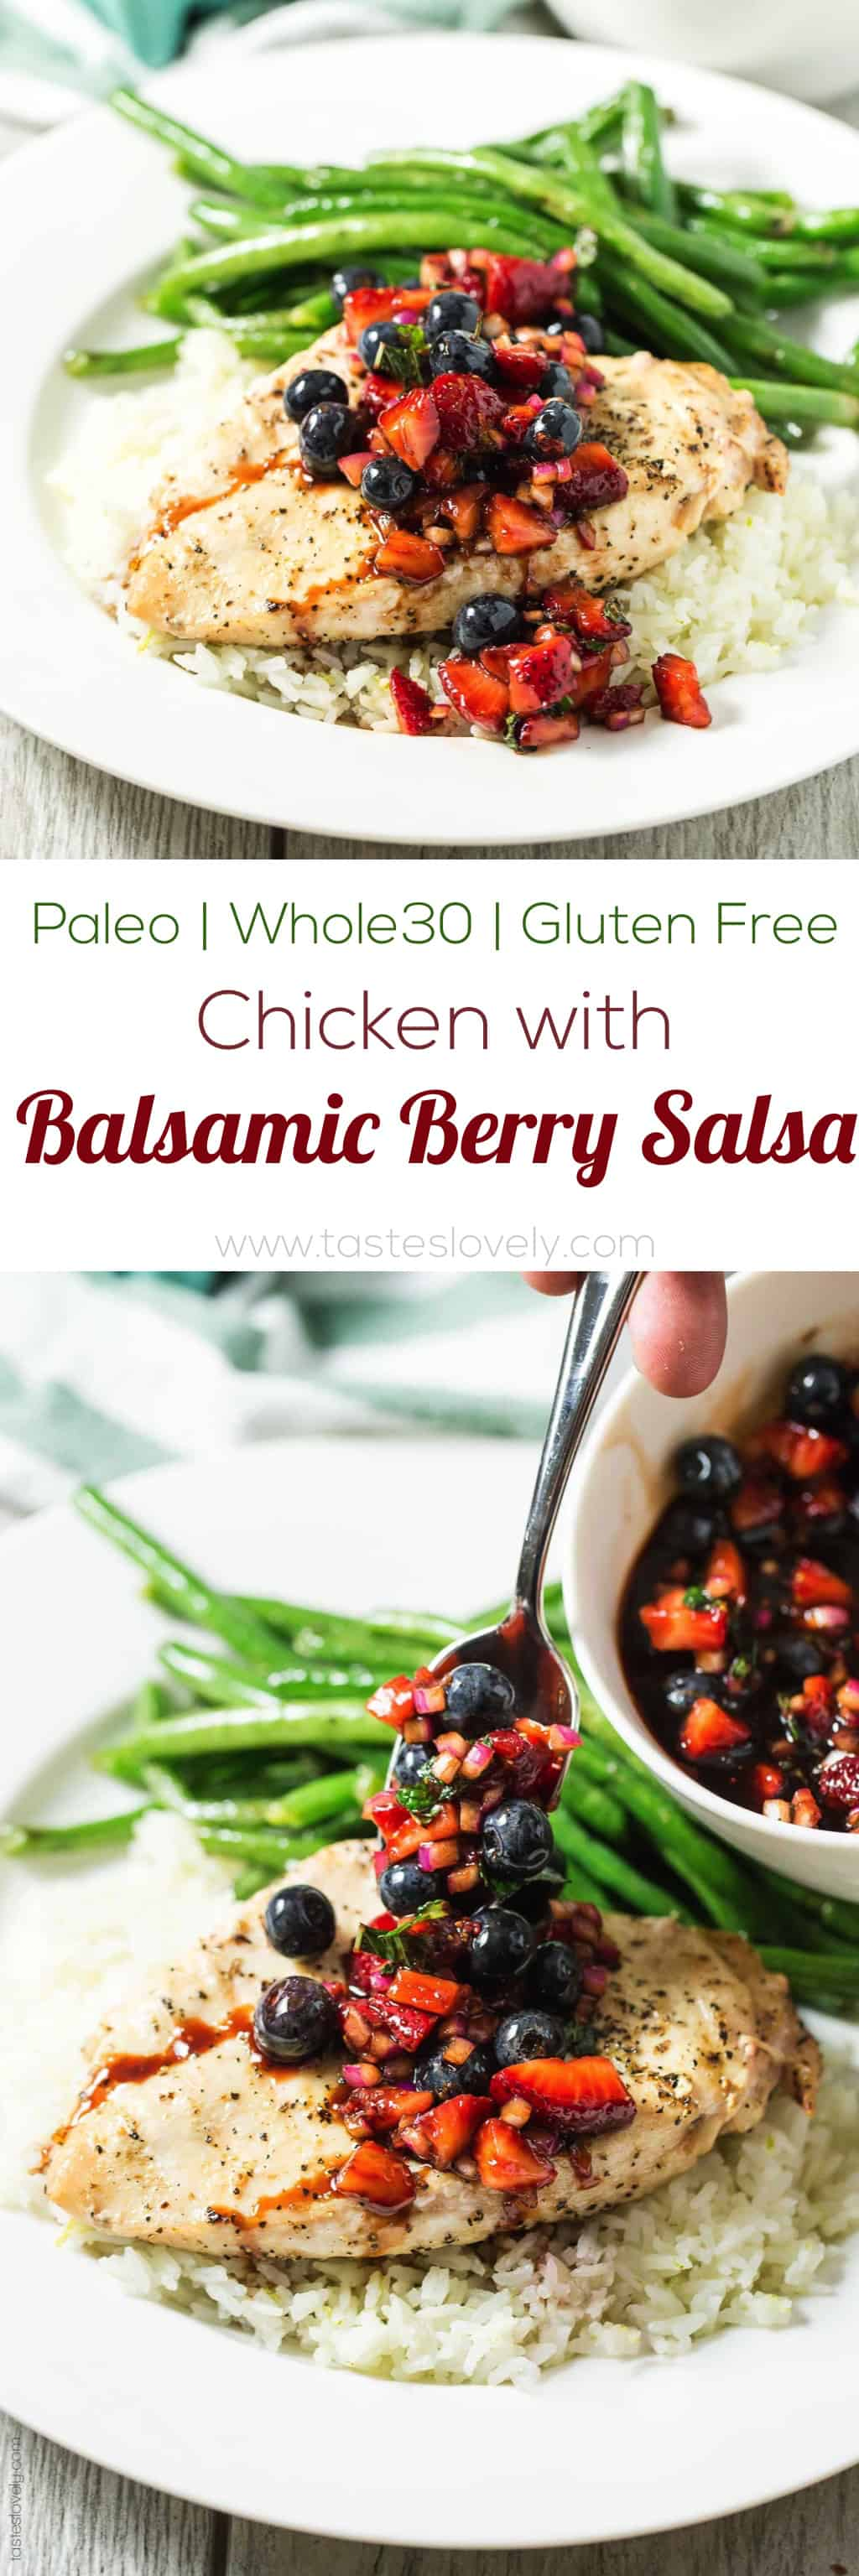 Grilled Chicken with Balsamic Berry Salsa (paleo, gluten free, dairy free, Whole30)